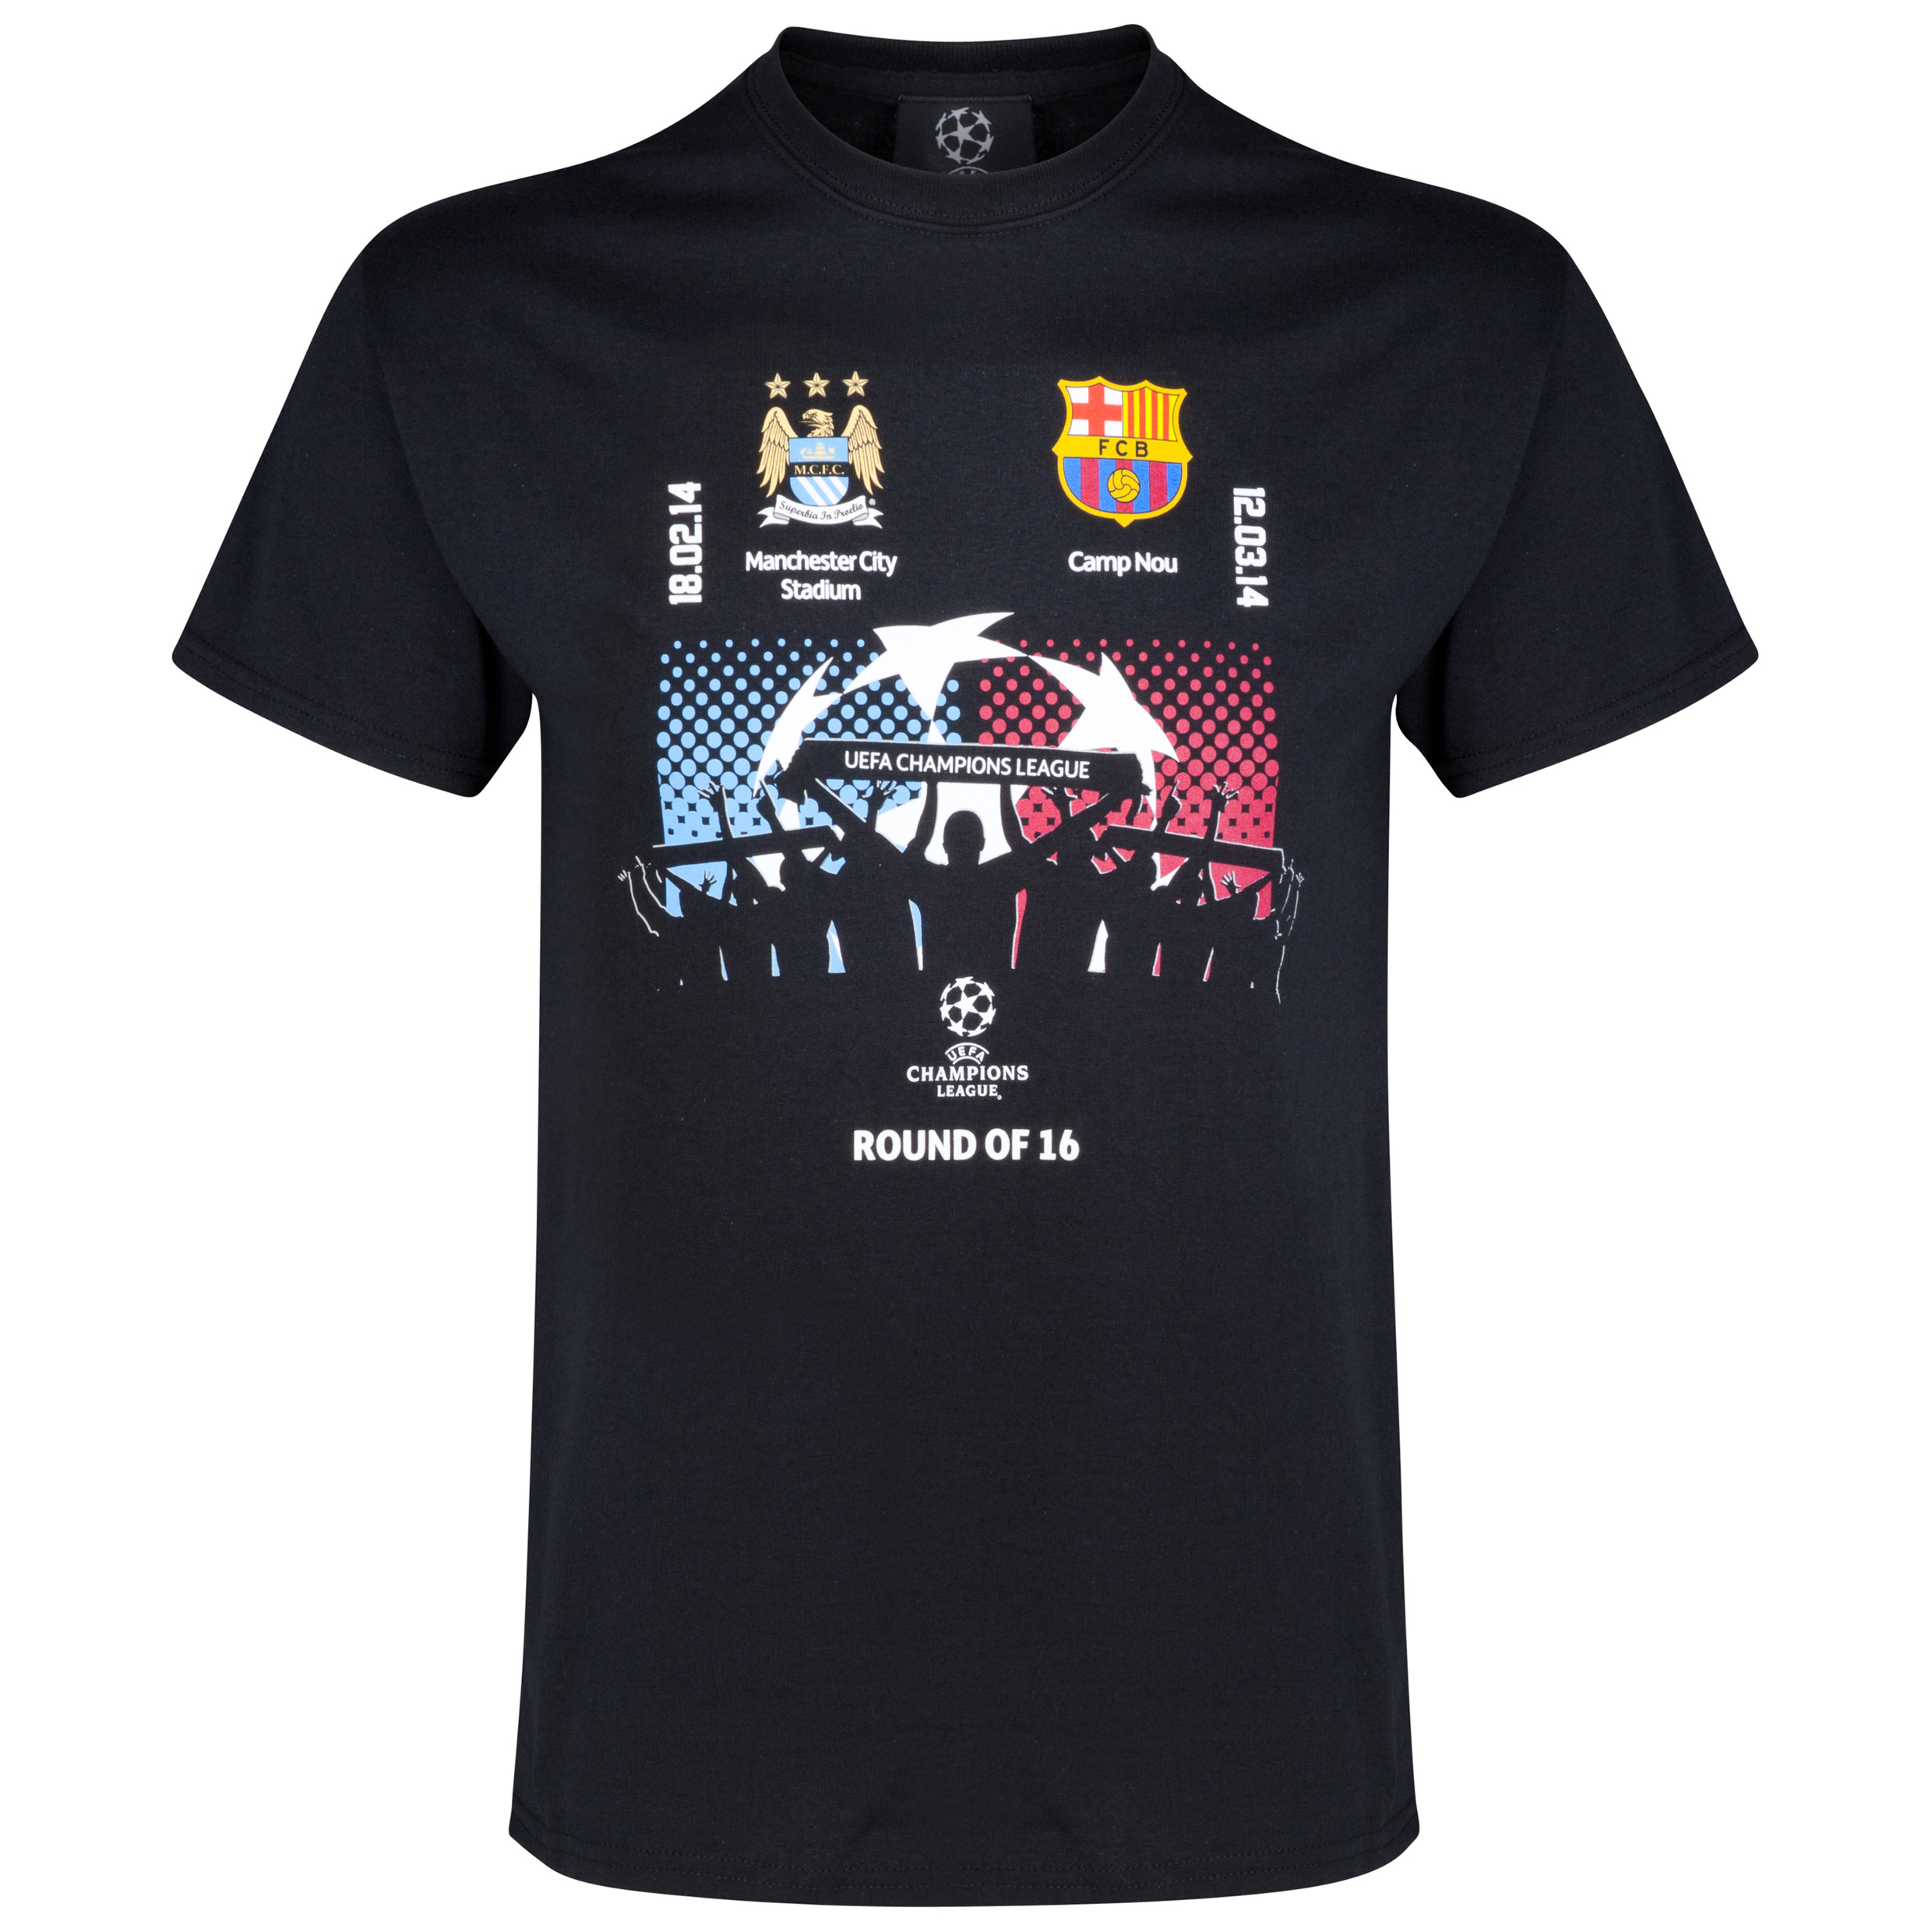 Manchester City UEFA Champions League Man City v Barcelona T-Shirt Black